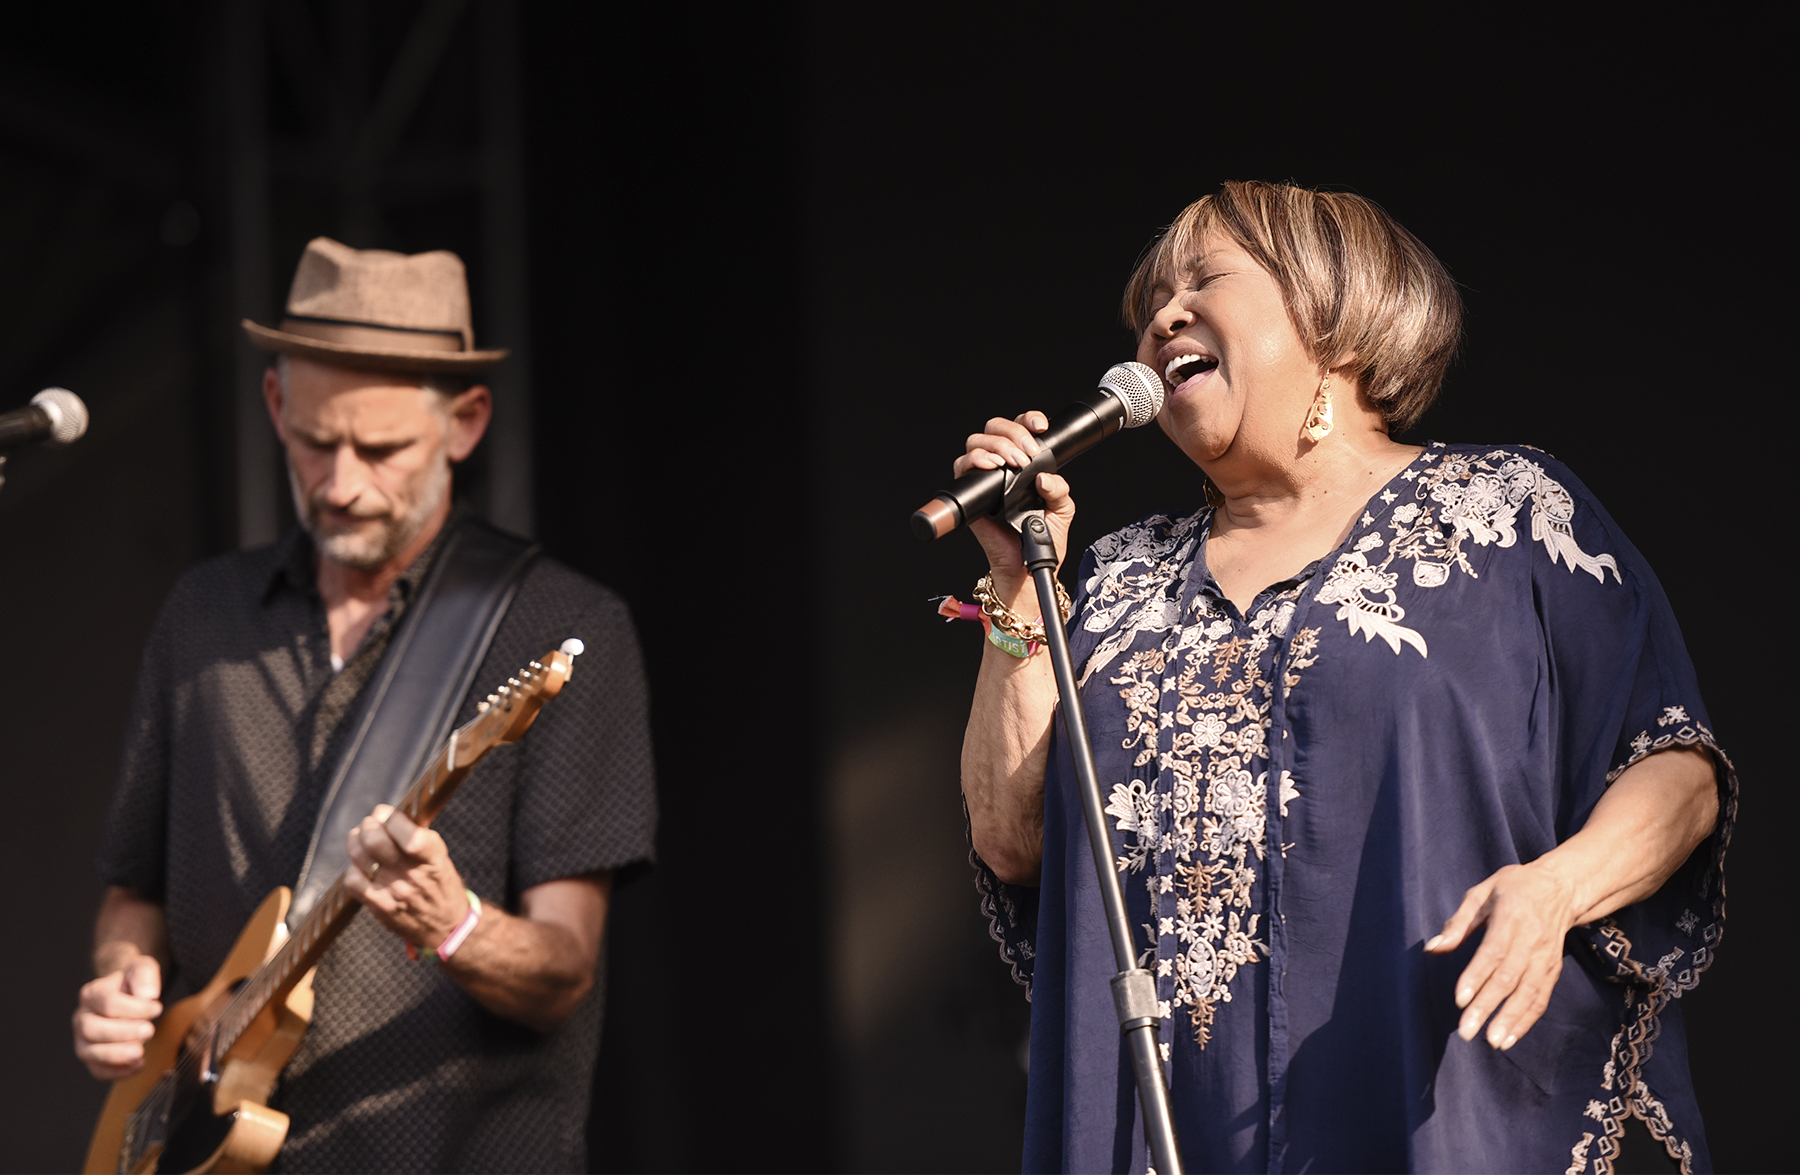 Mavis Staples_001.jpg